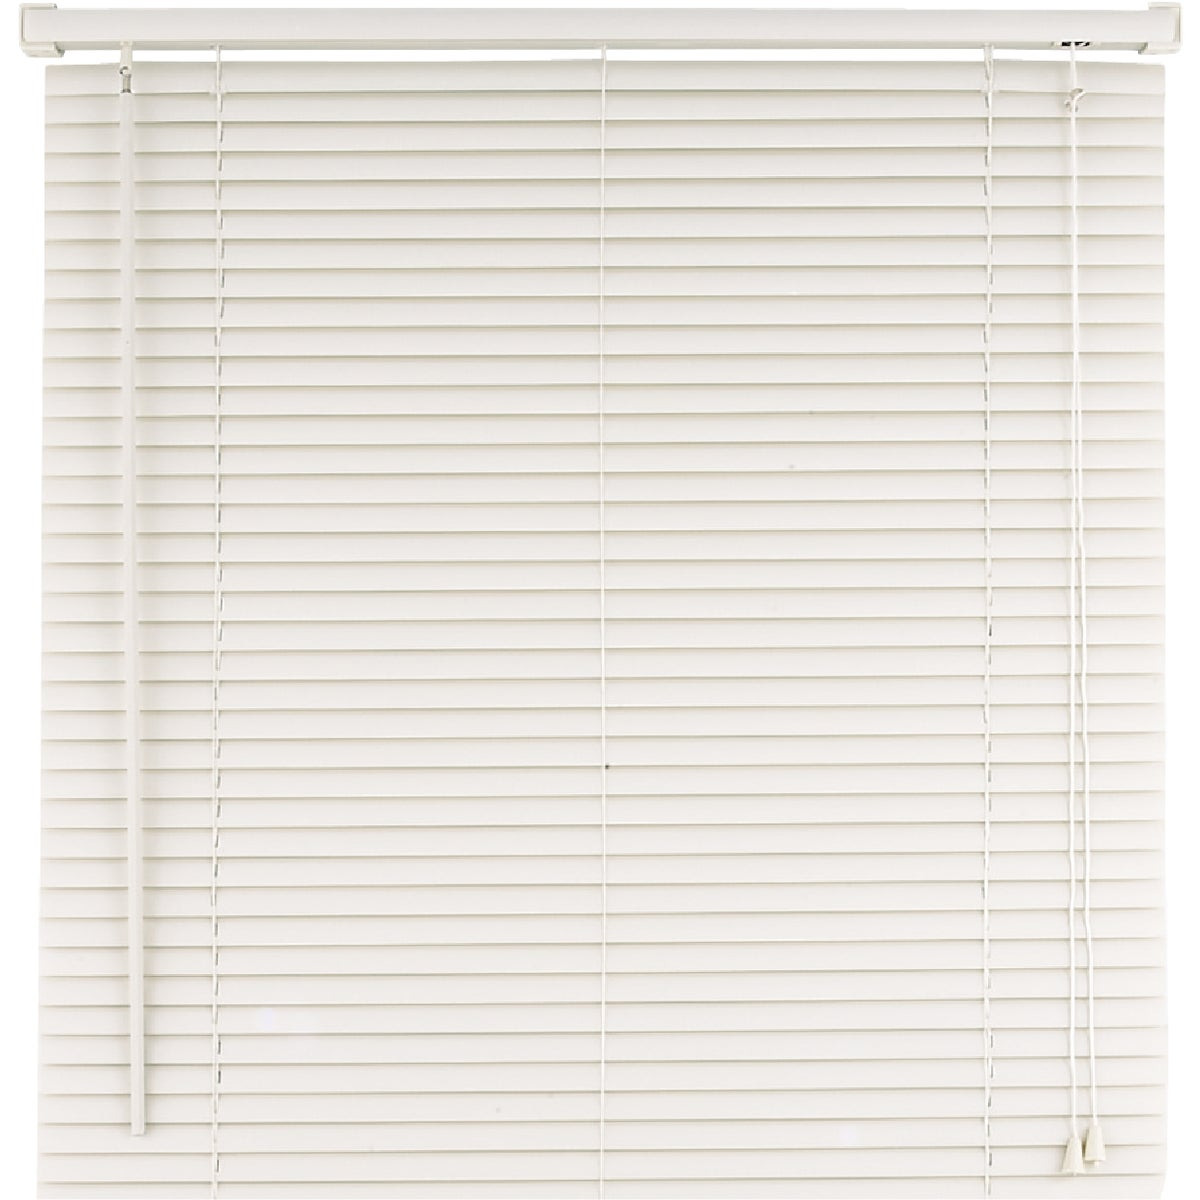 23X64 WHITE MINI BLIND - 2364-152 by Lotus Wind Incom